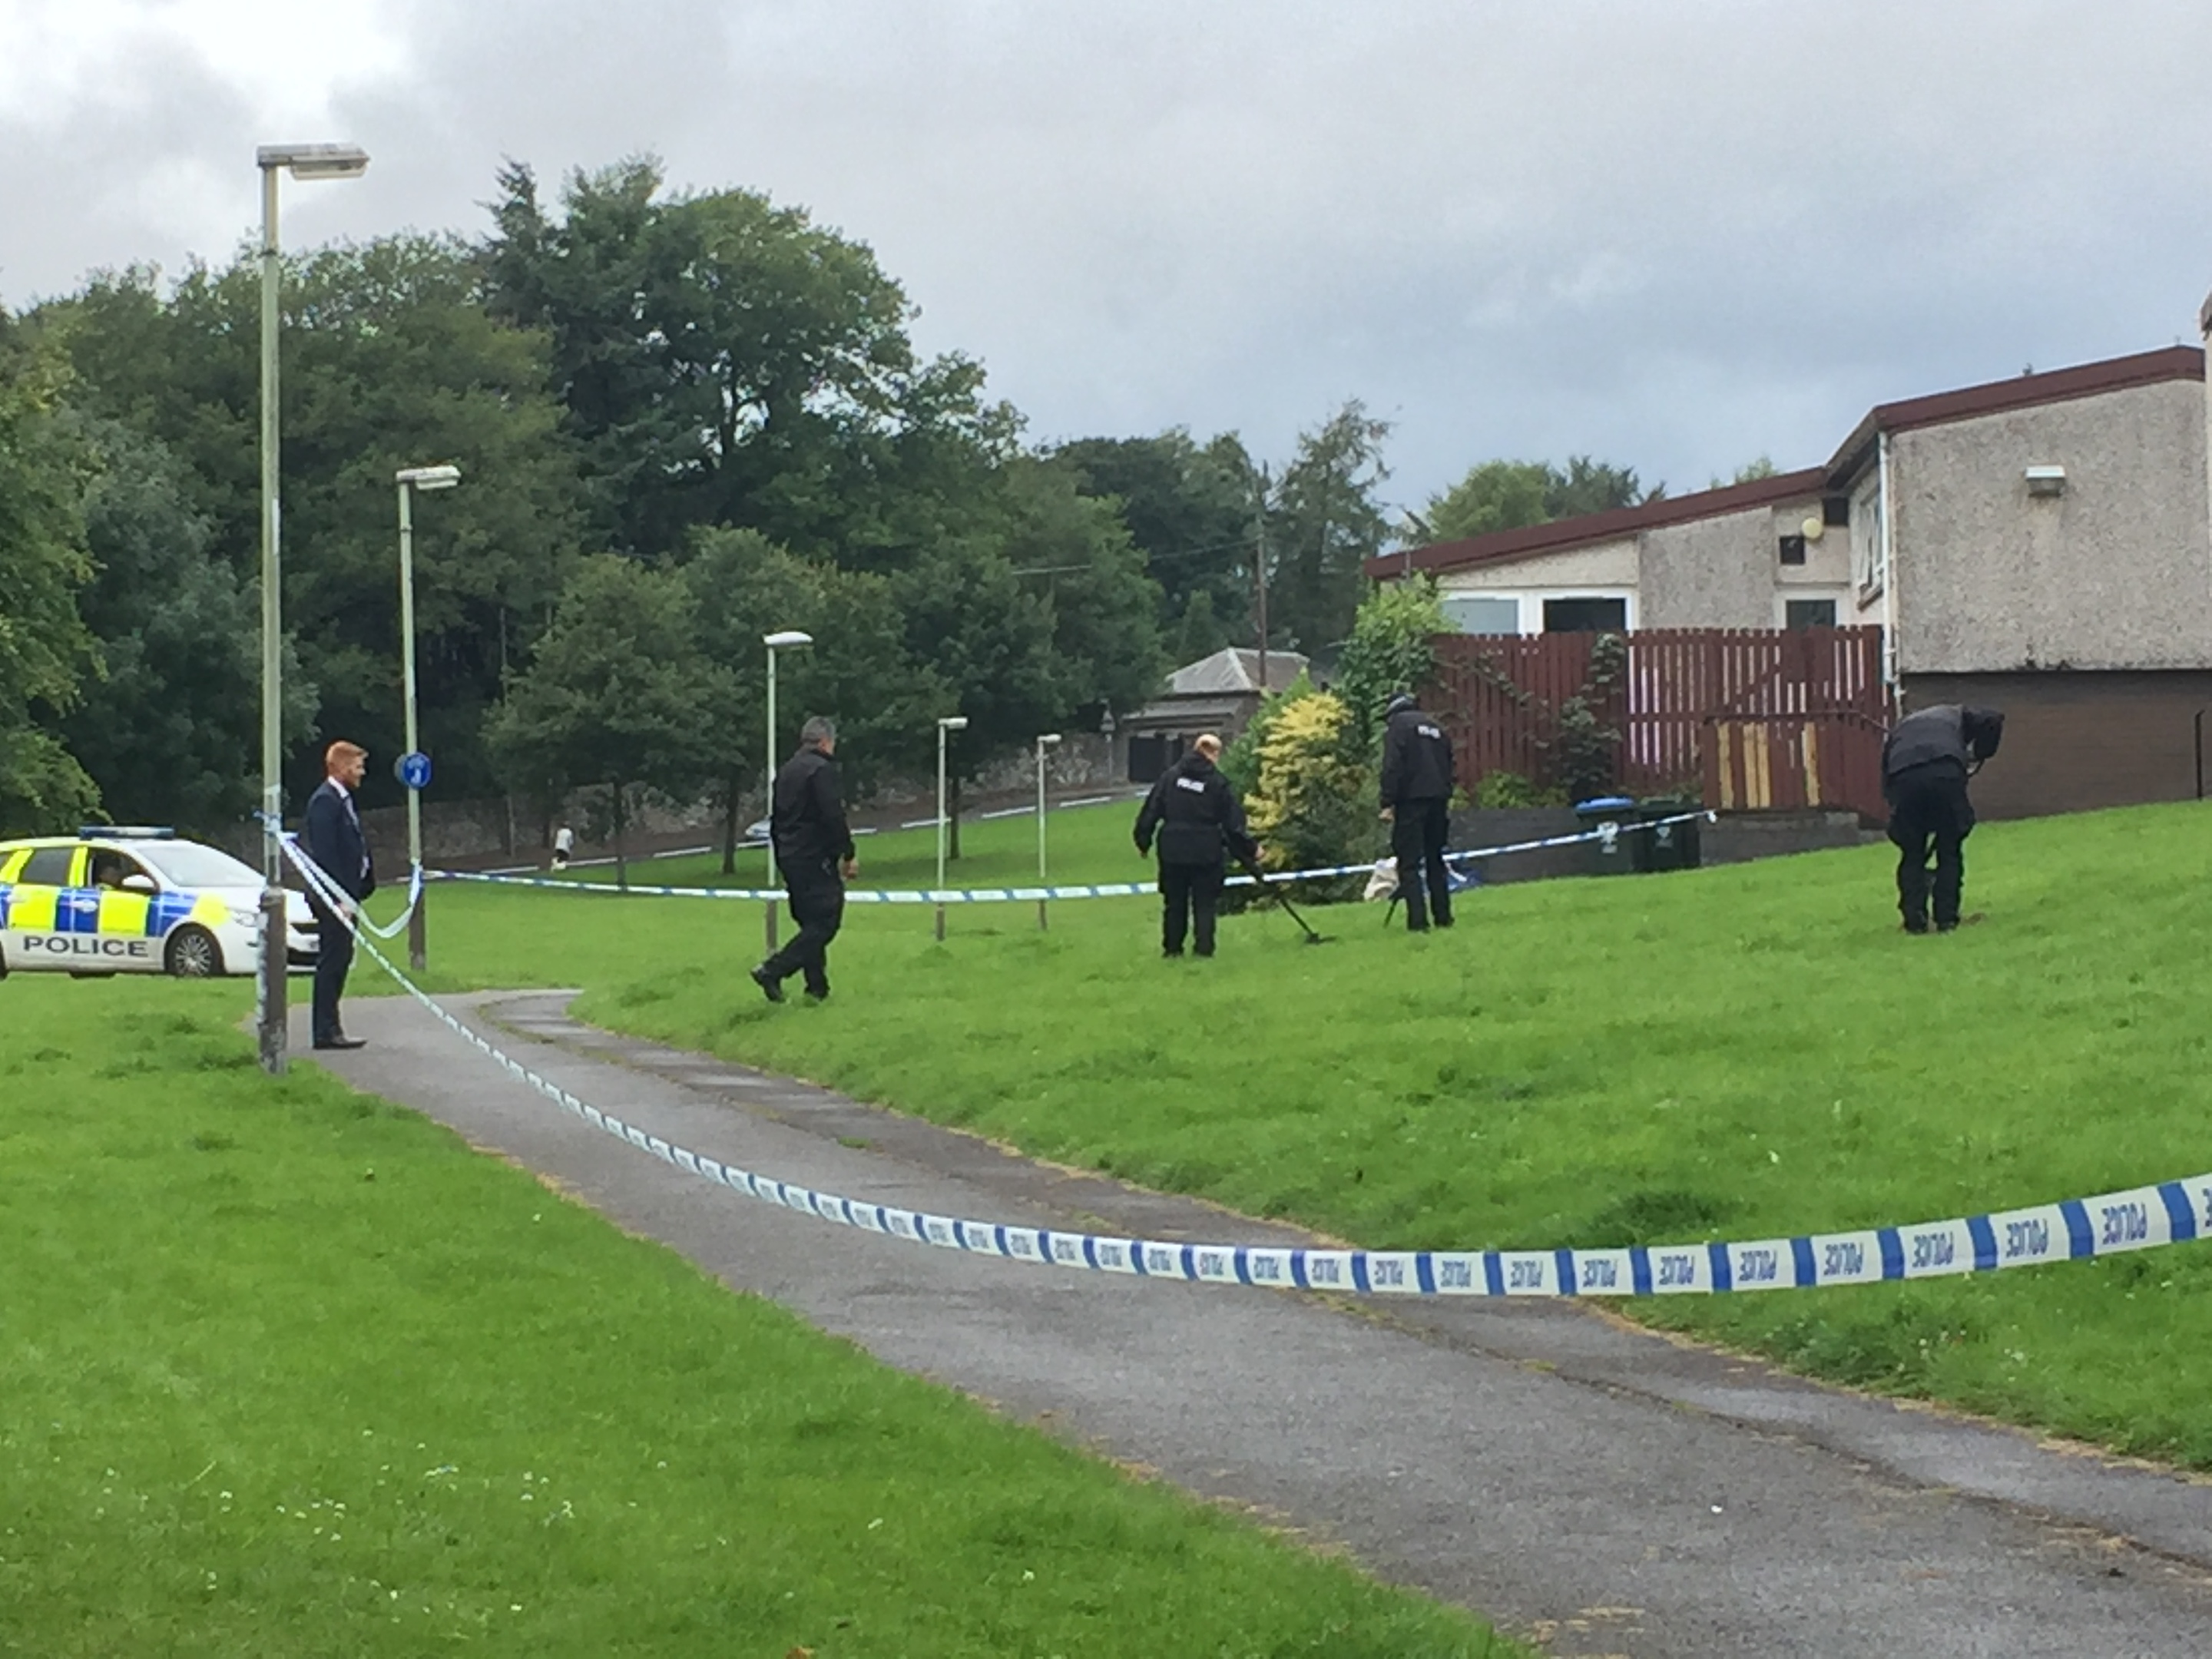 Police were seen with a metal detector in the area of the incident